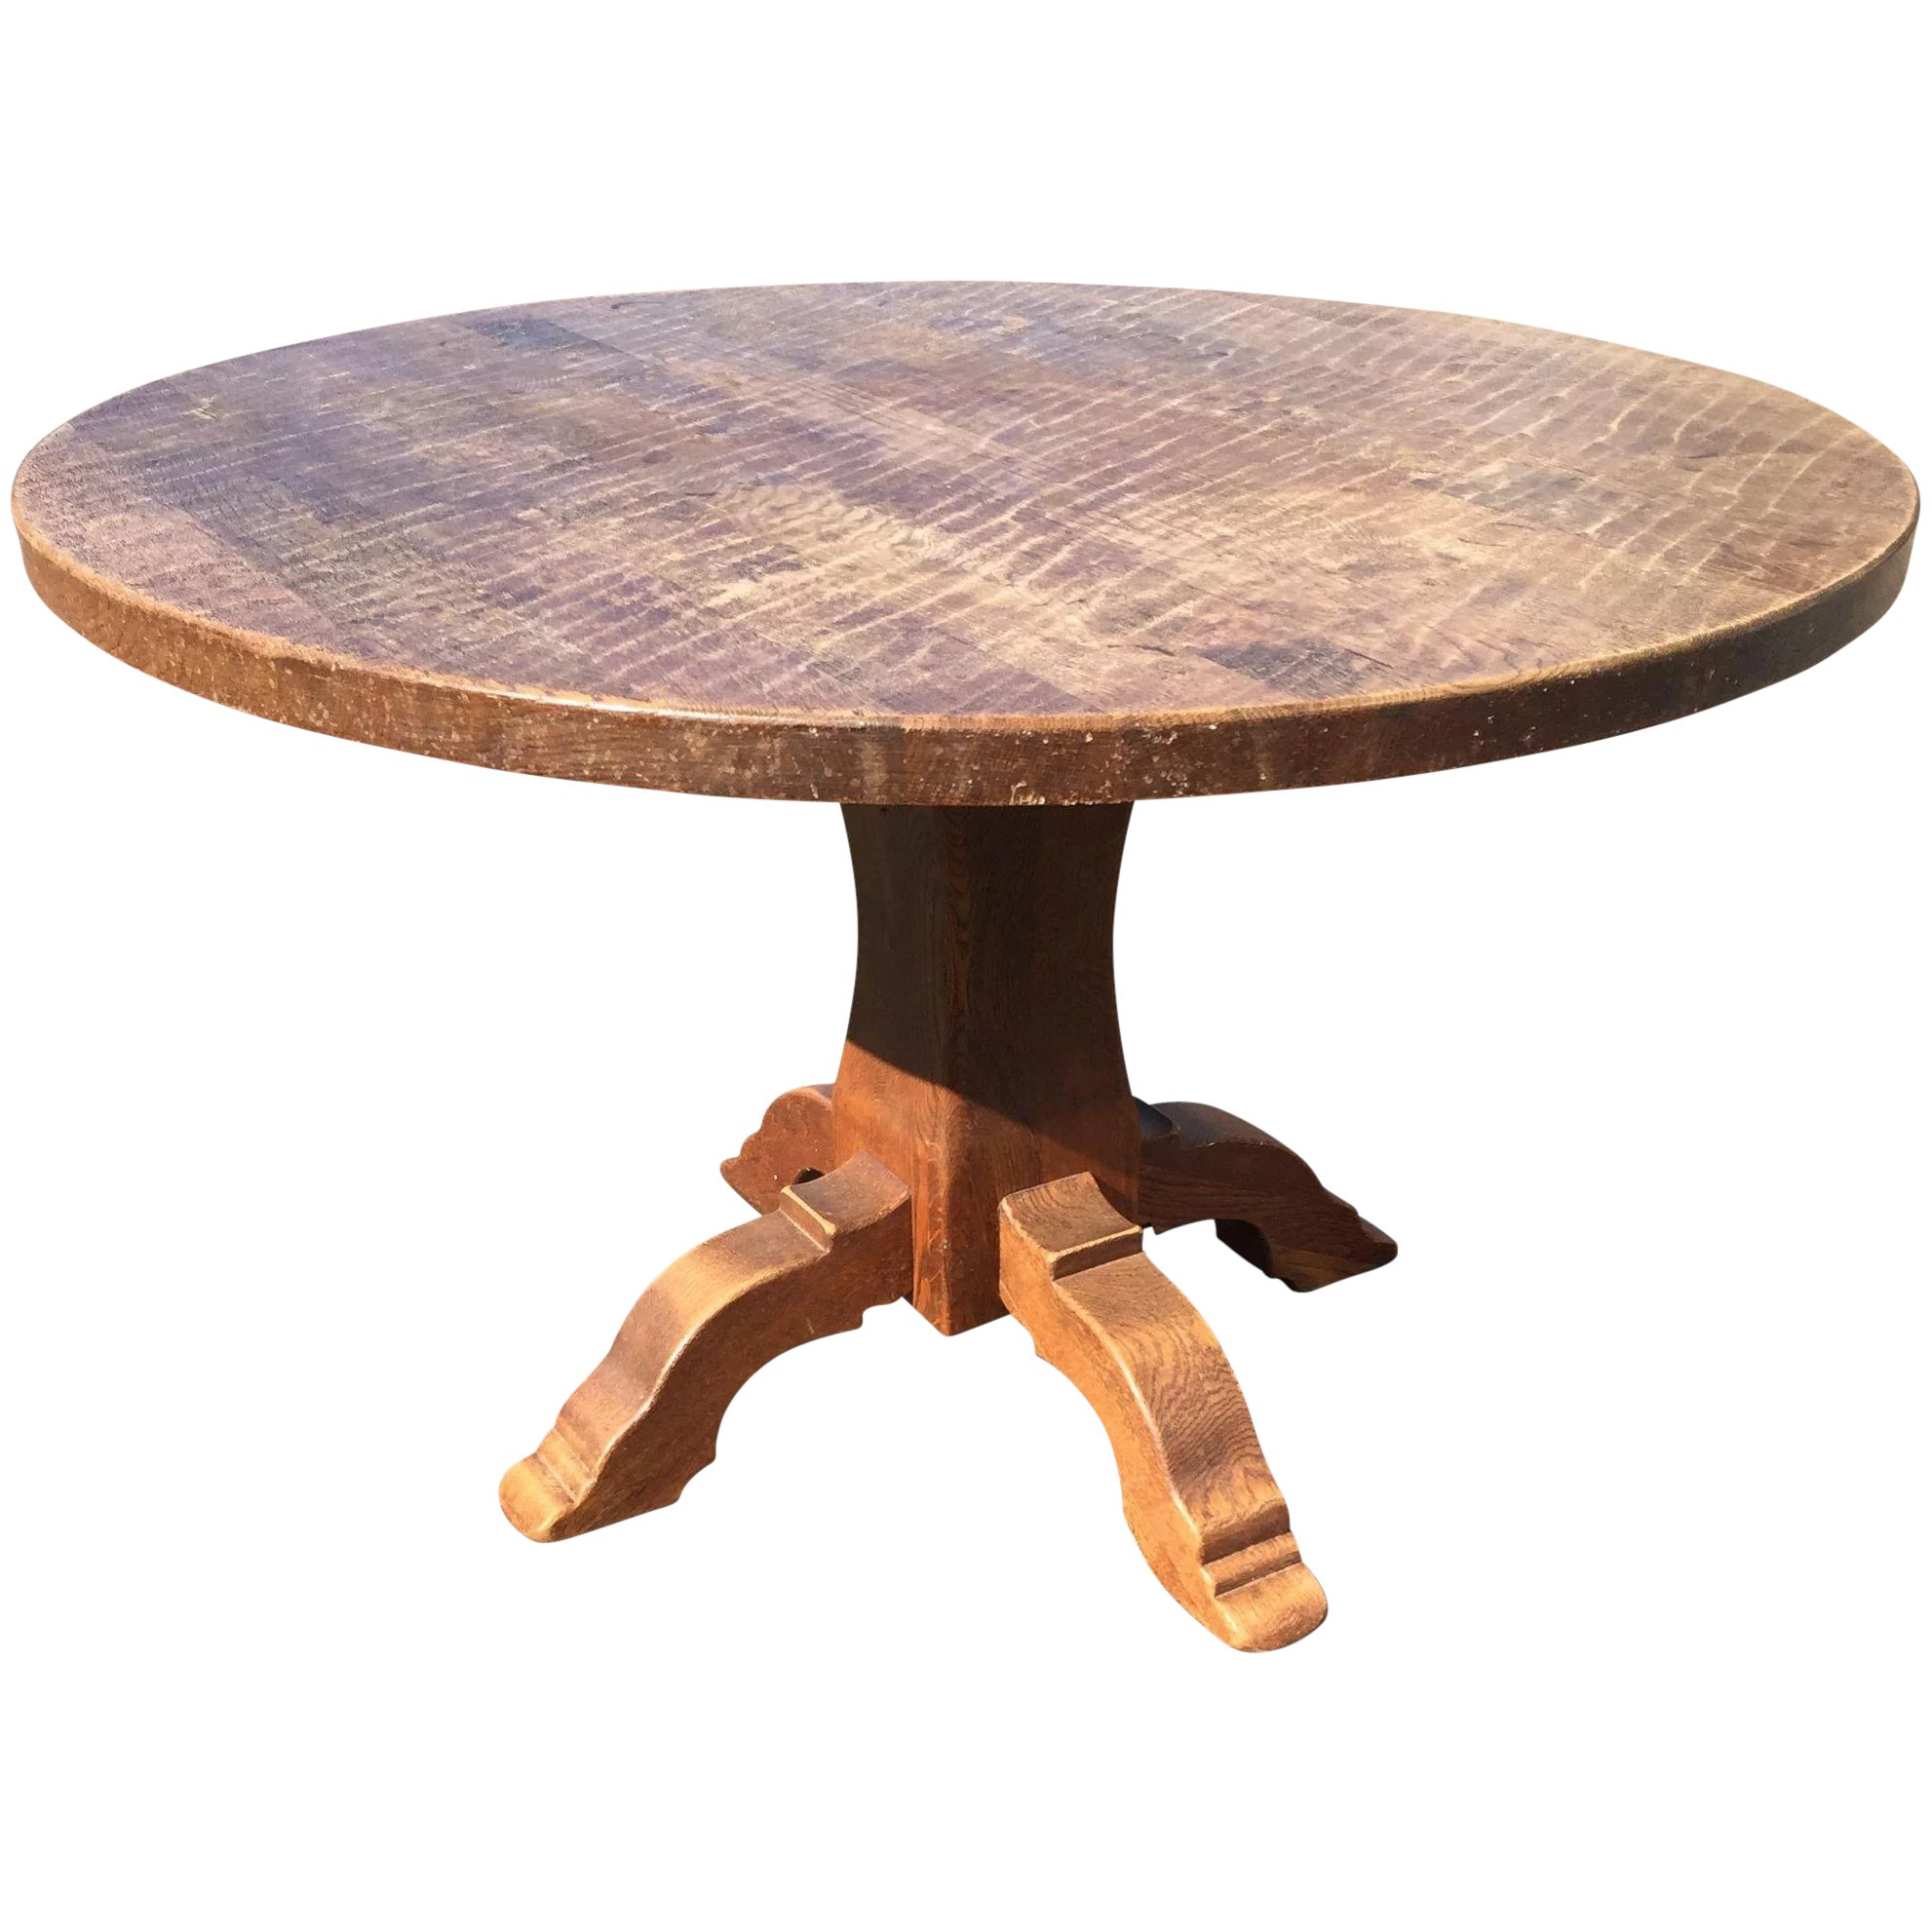 Antique Round Wooden Coffee Tables: Vintage French Rustic Oak Wood Round Table : Europe